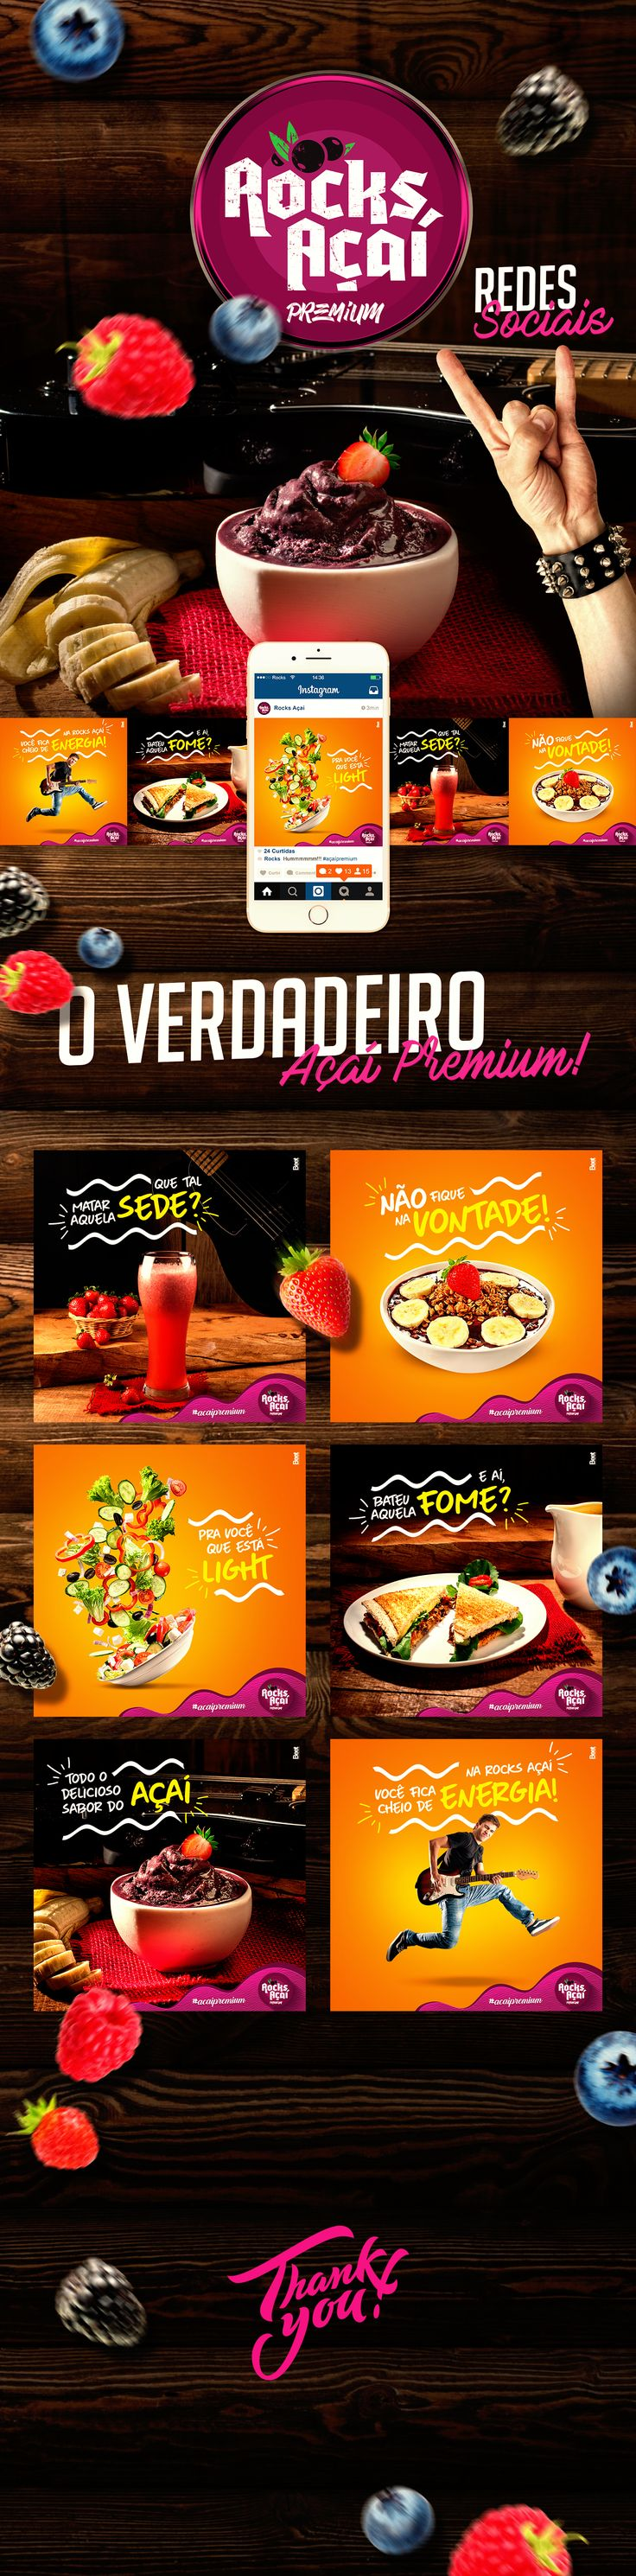 Confira este projeto do @Behance: \u201cRocks Açaí - Social Media\u201d https://www.behance.net/gallery/51726973/Rocks-Acai-Social-Media